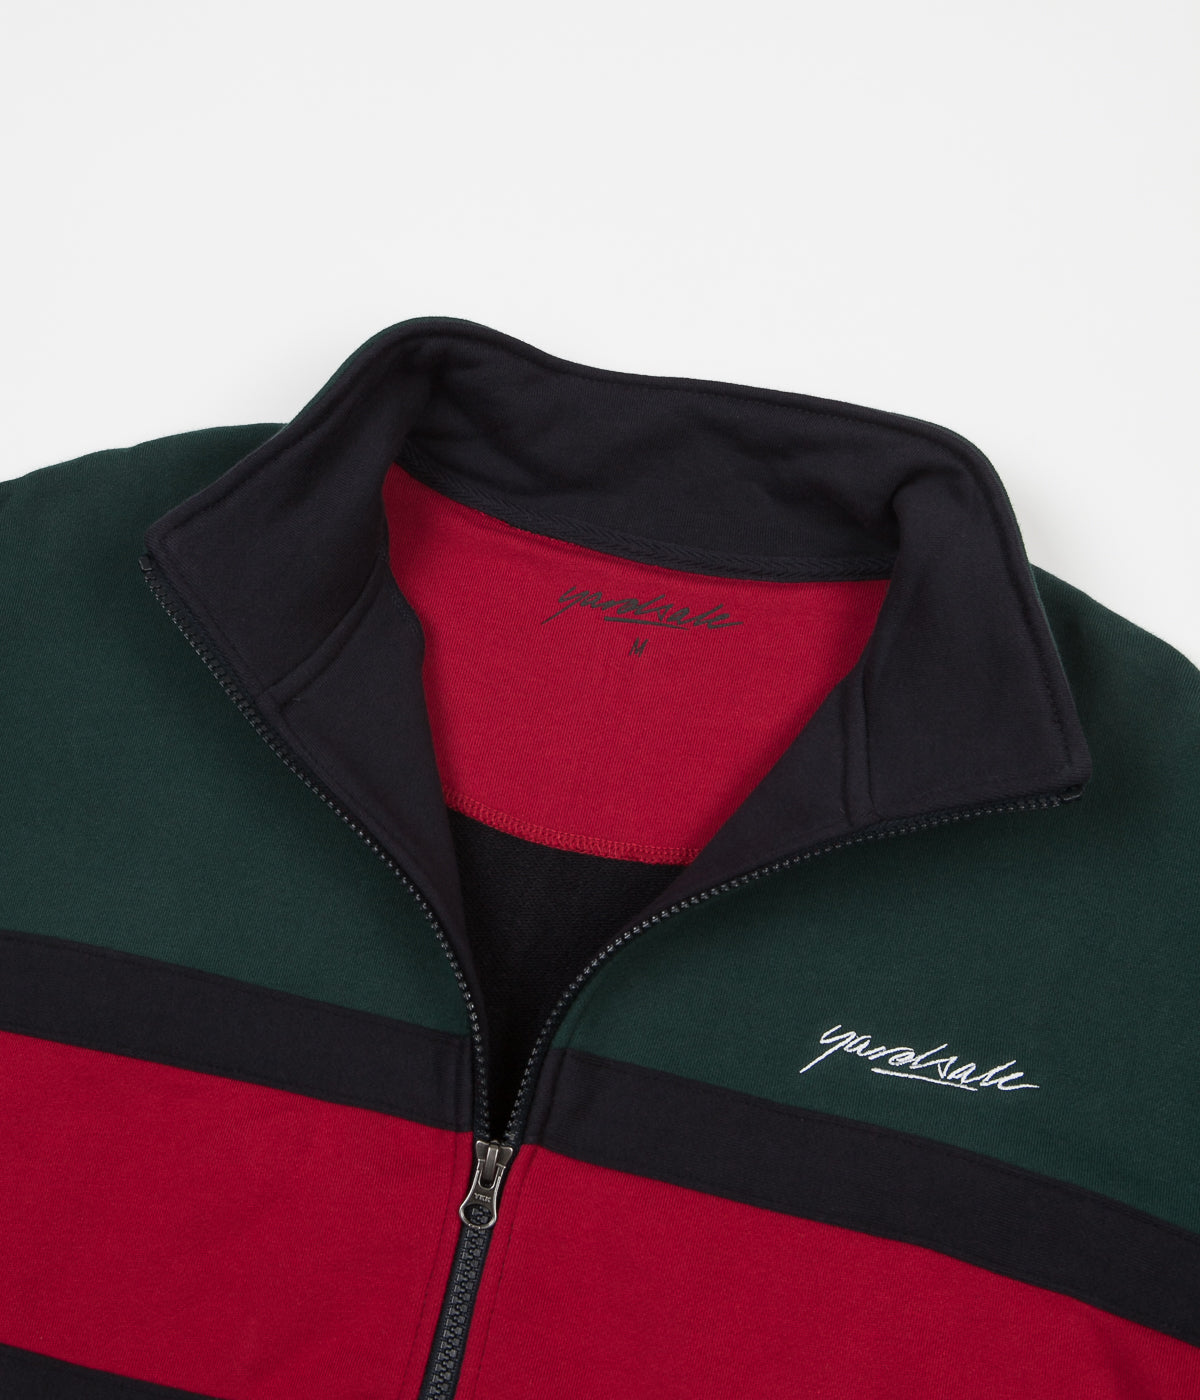 Yardsale Dior Full Zip Sweatshirt - Green / Red / Navy